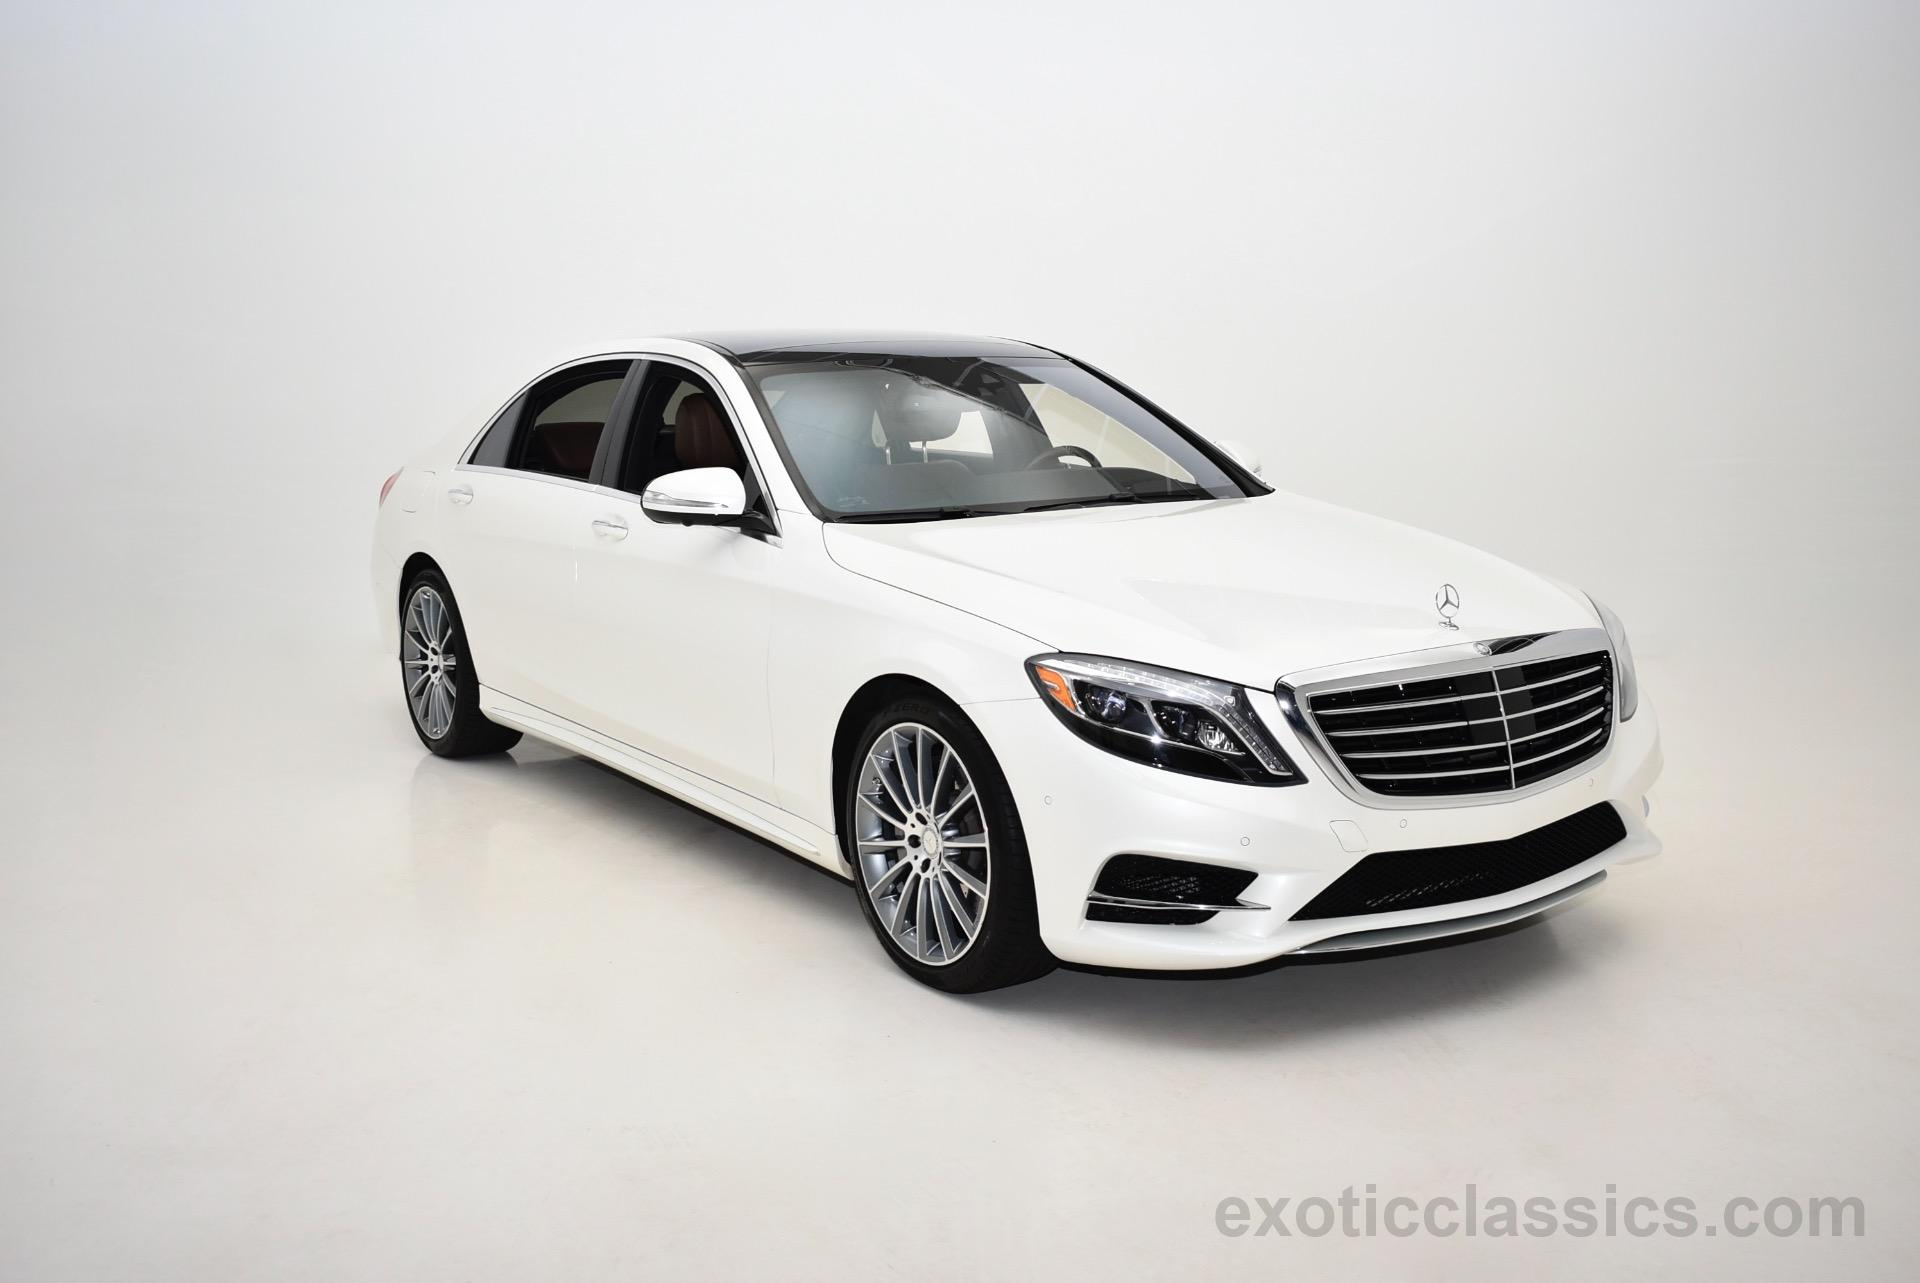 2015 Mercedes Benz S Class S 550 4MATIC Champion Motors